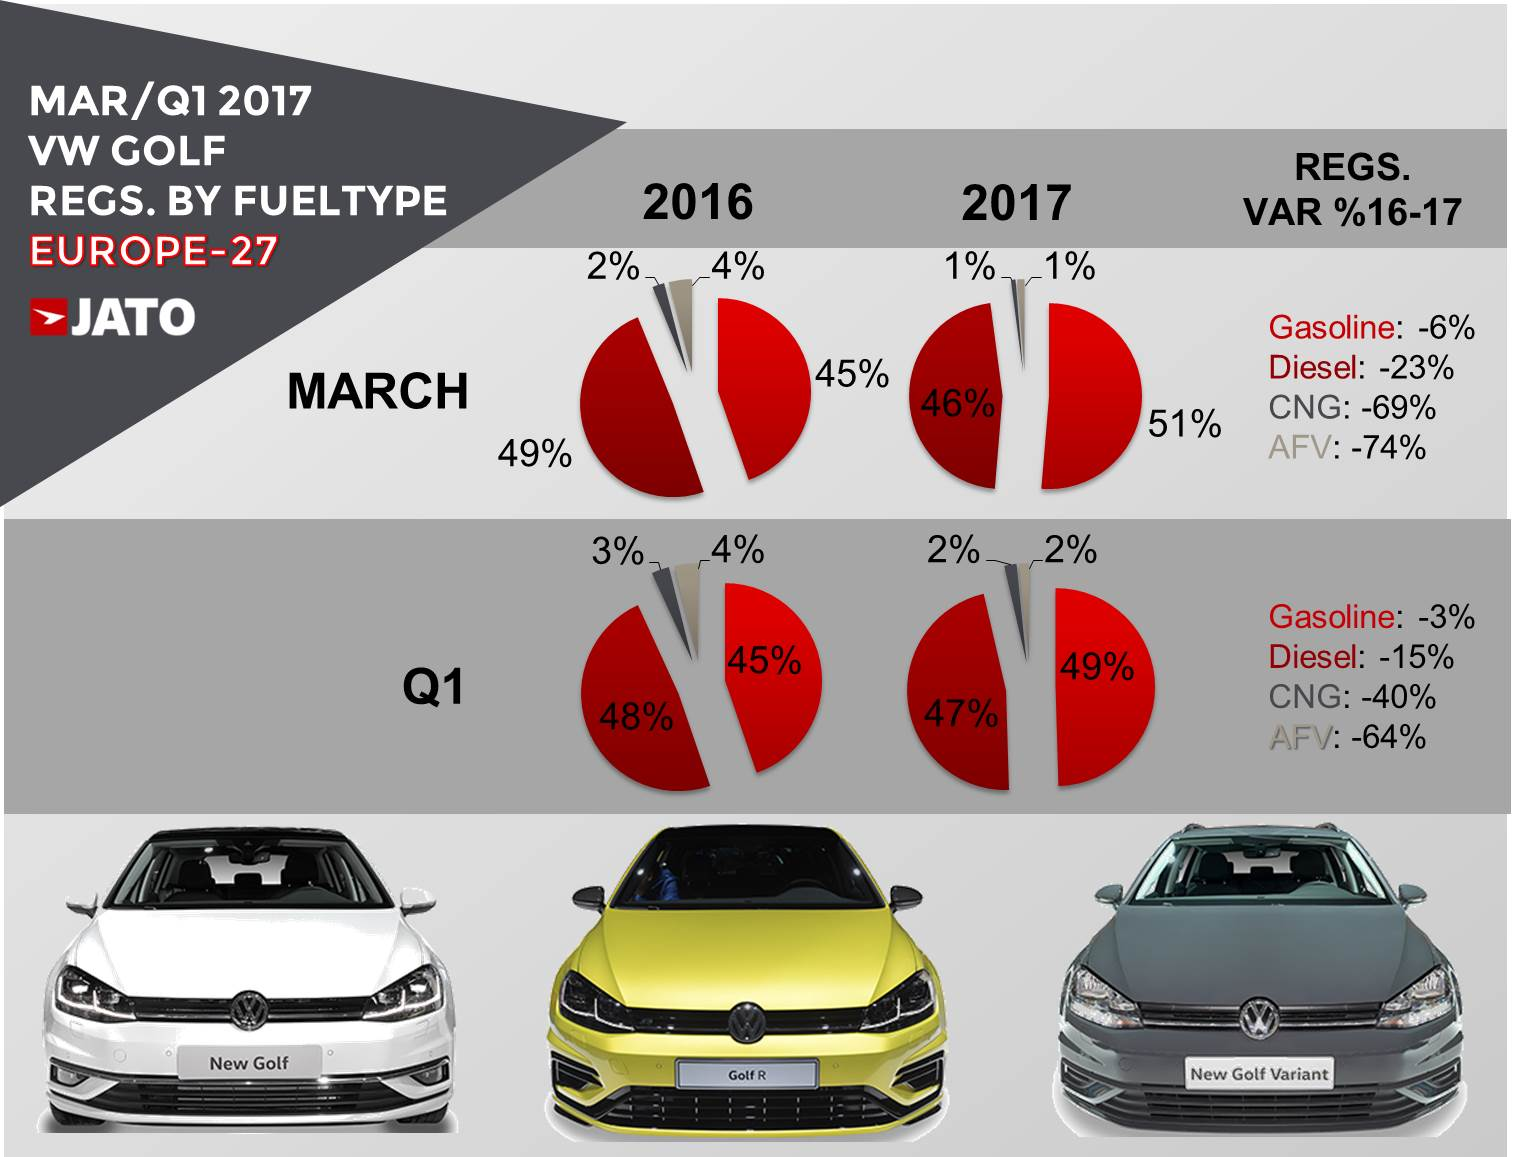 3 Reasons Why The Vw Golf Was Dethroned As The Best Selling Car In